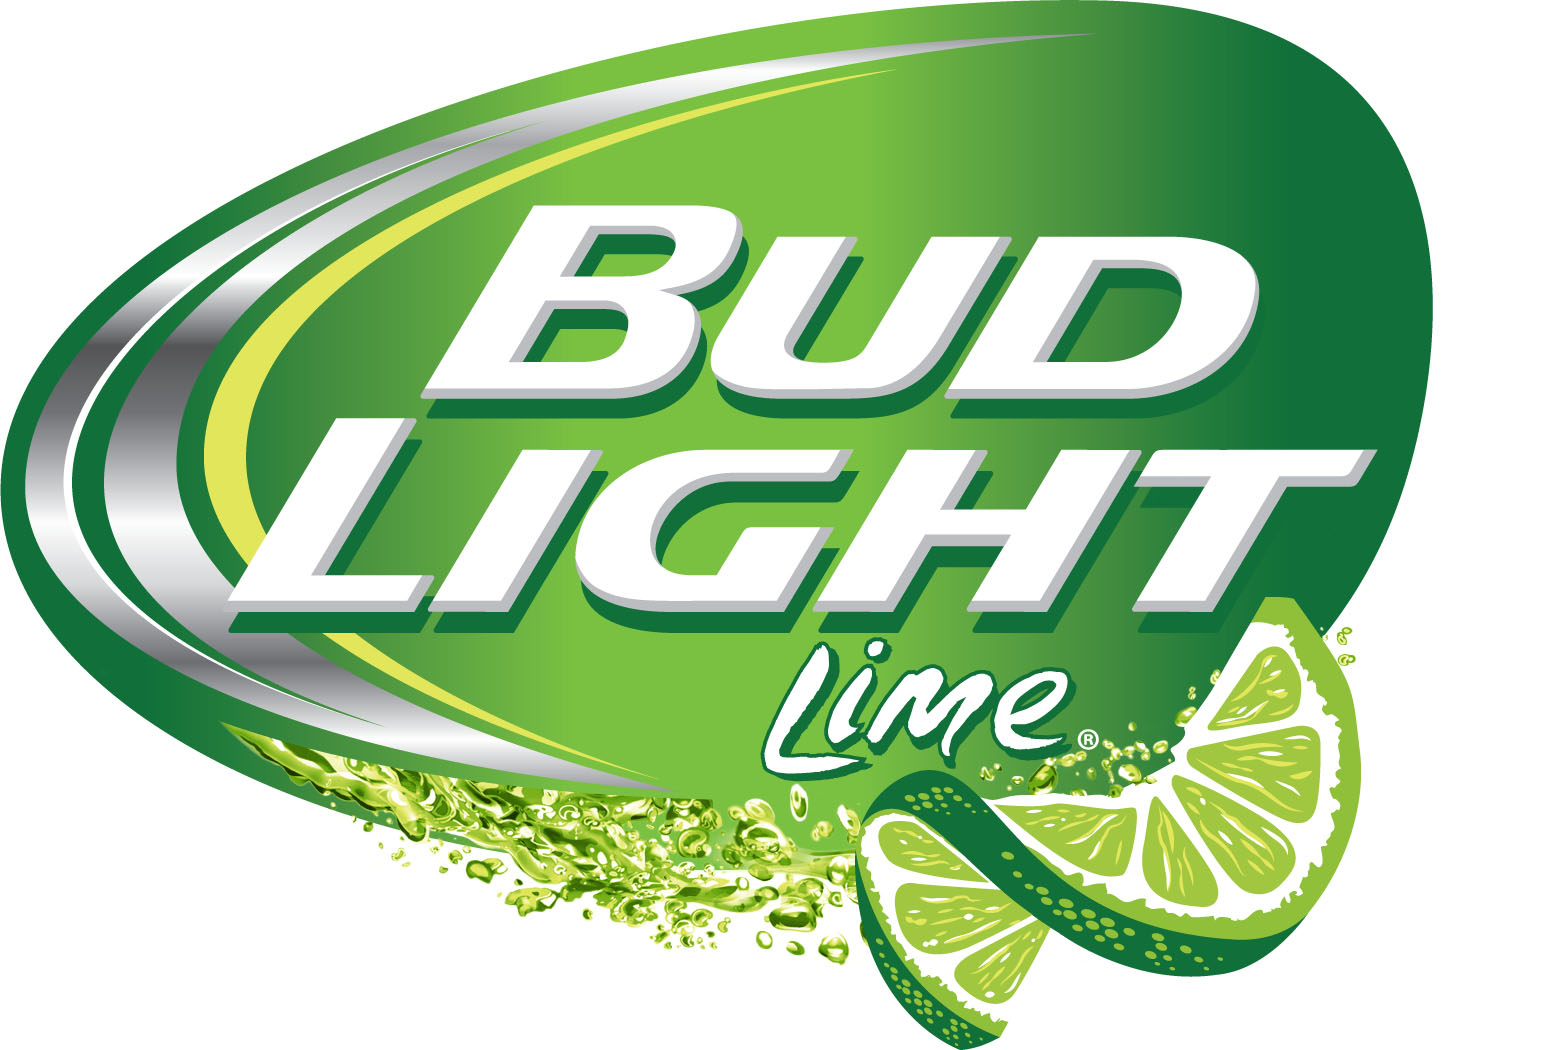 Bud-Light-Lime-Logo.jpg